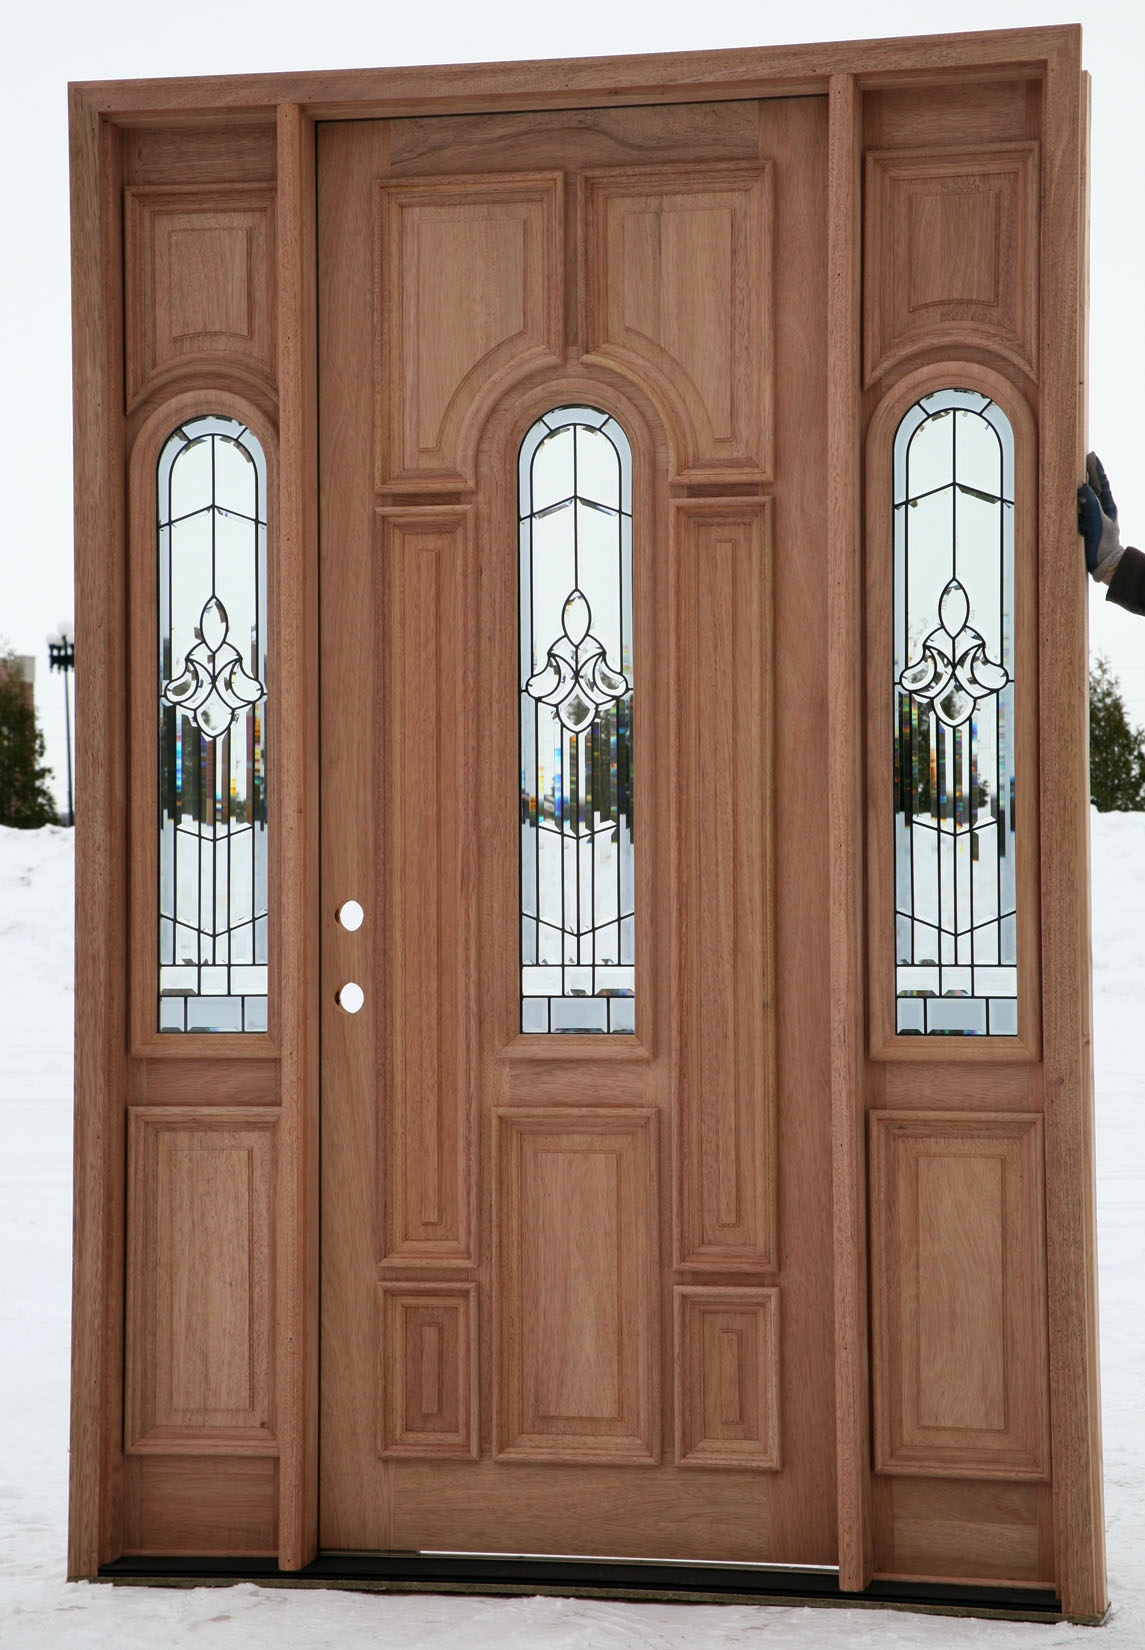 Exterior doors prehung with sidelights for Wood front entry doors